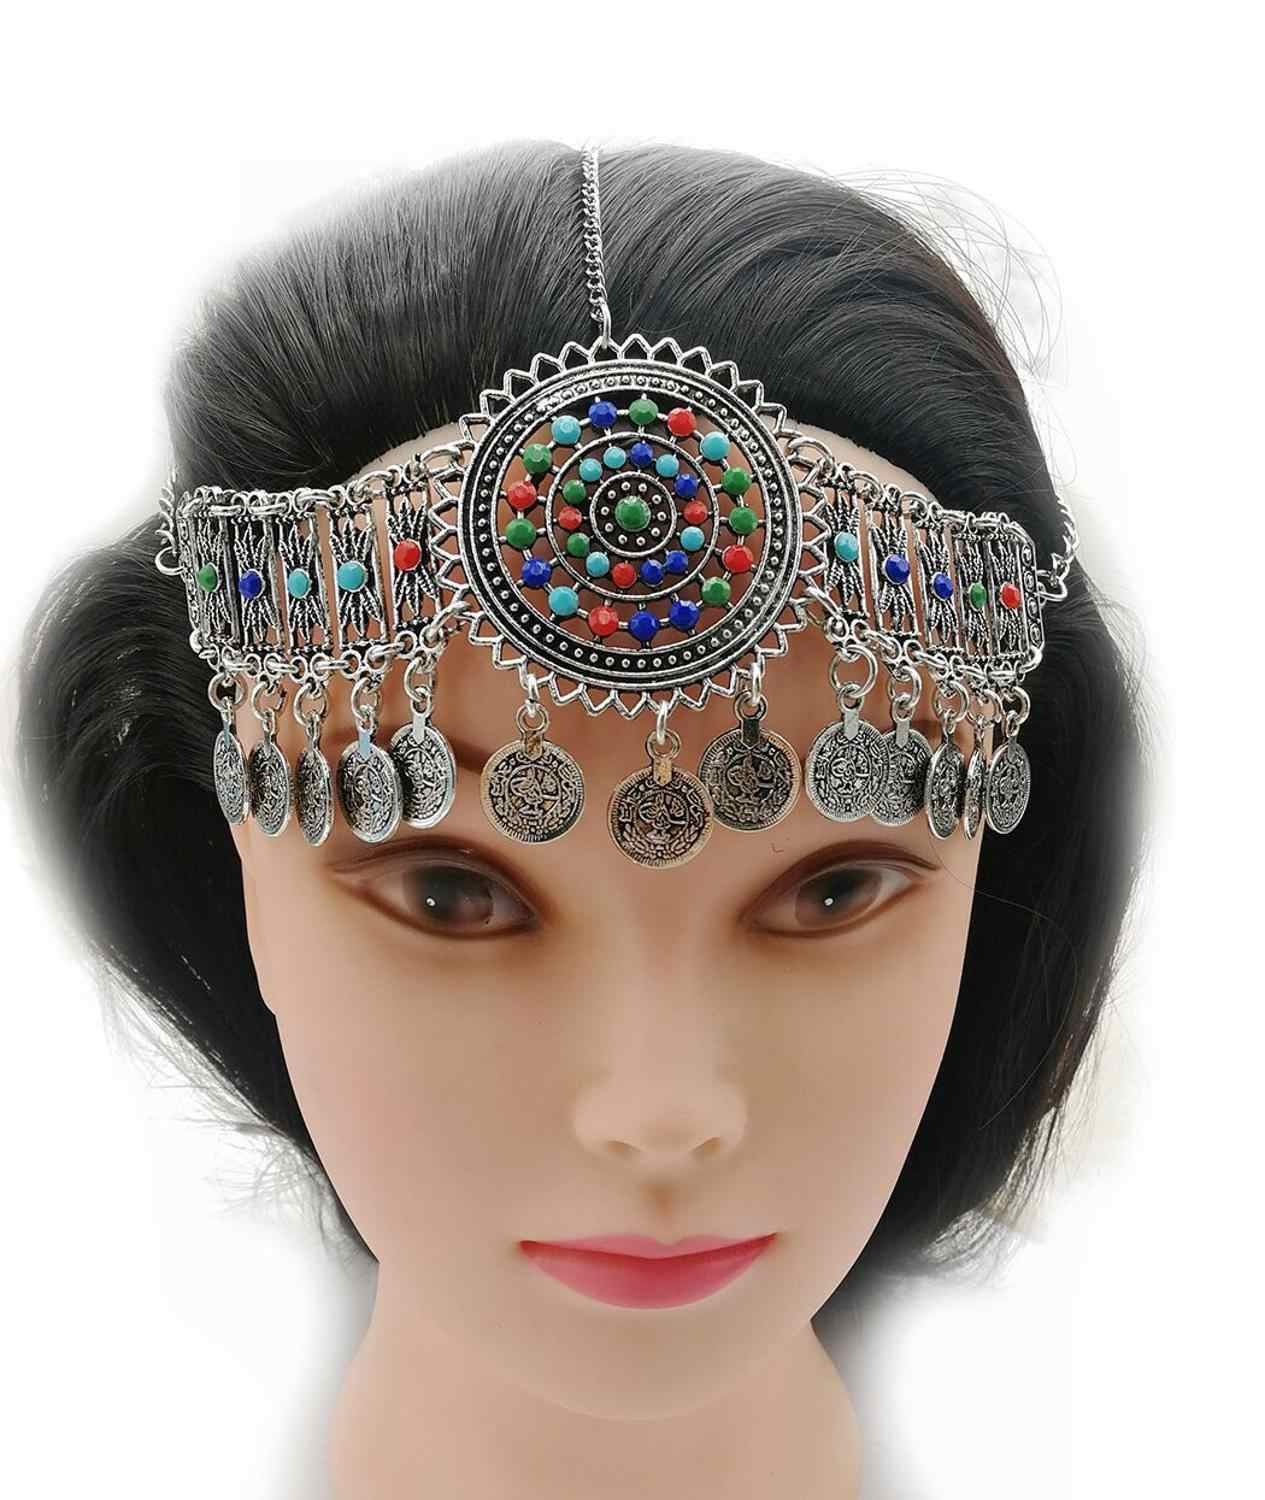 Women Tribal India Belly Dance Head Chains & Bracelets Gypsy Jewelry Golden Coin Clips Hair Decoration Festival Jewelry Sets